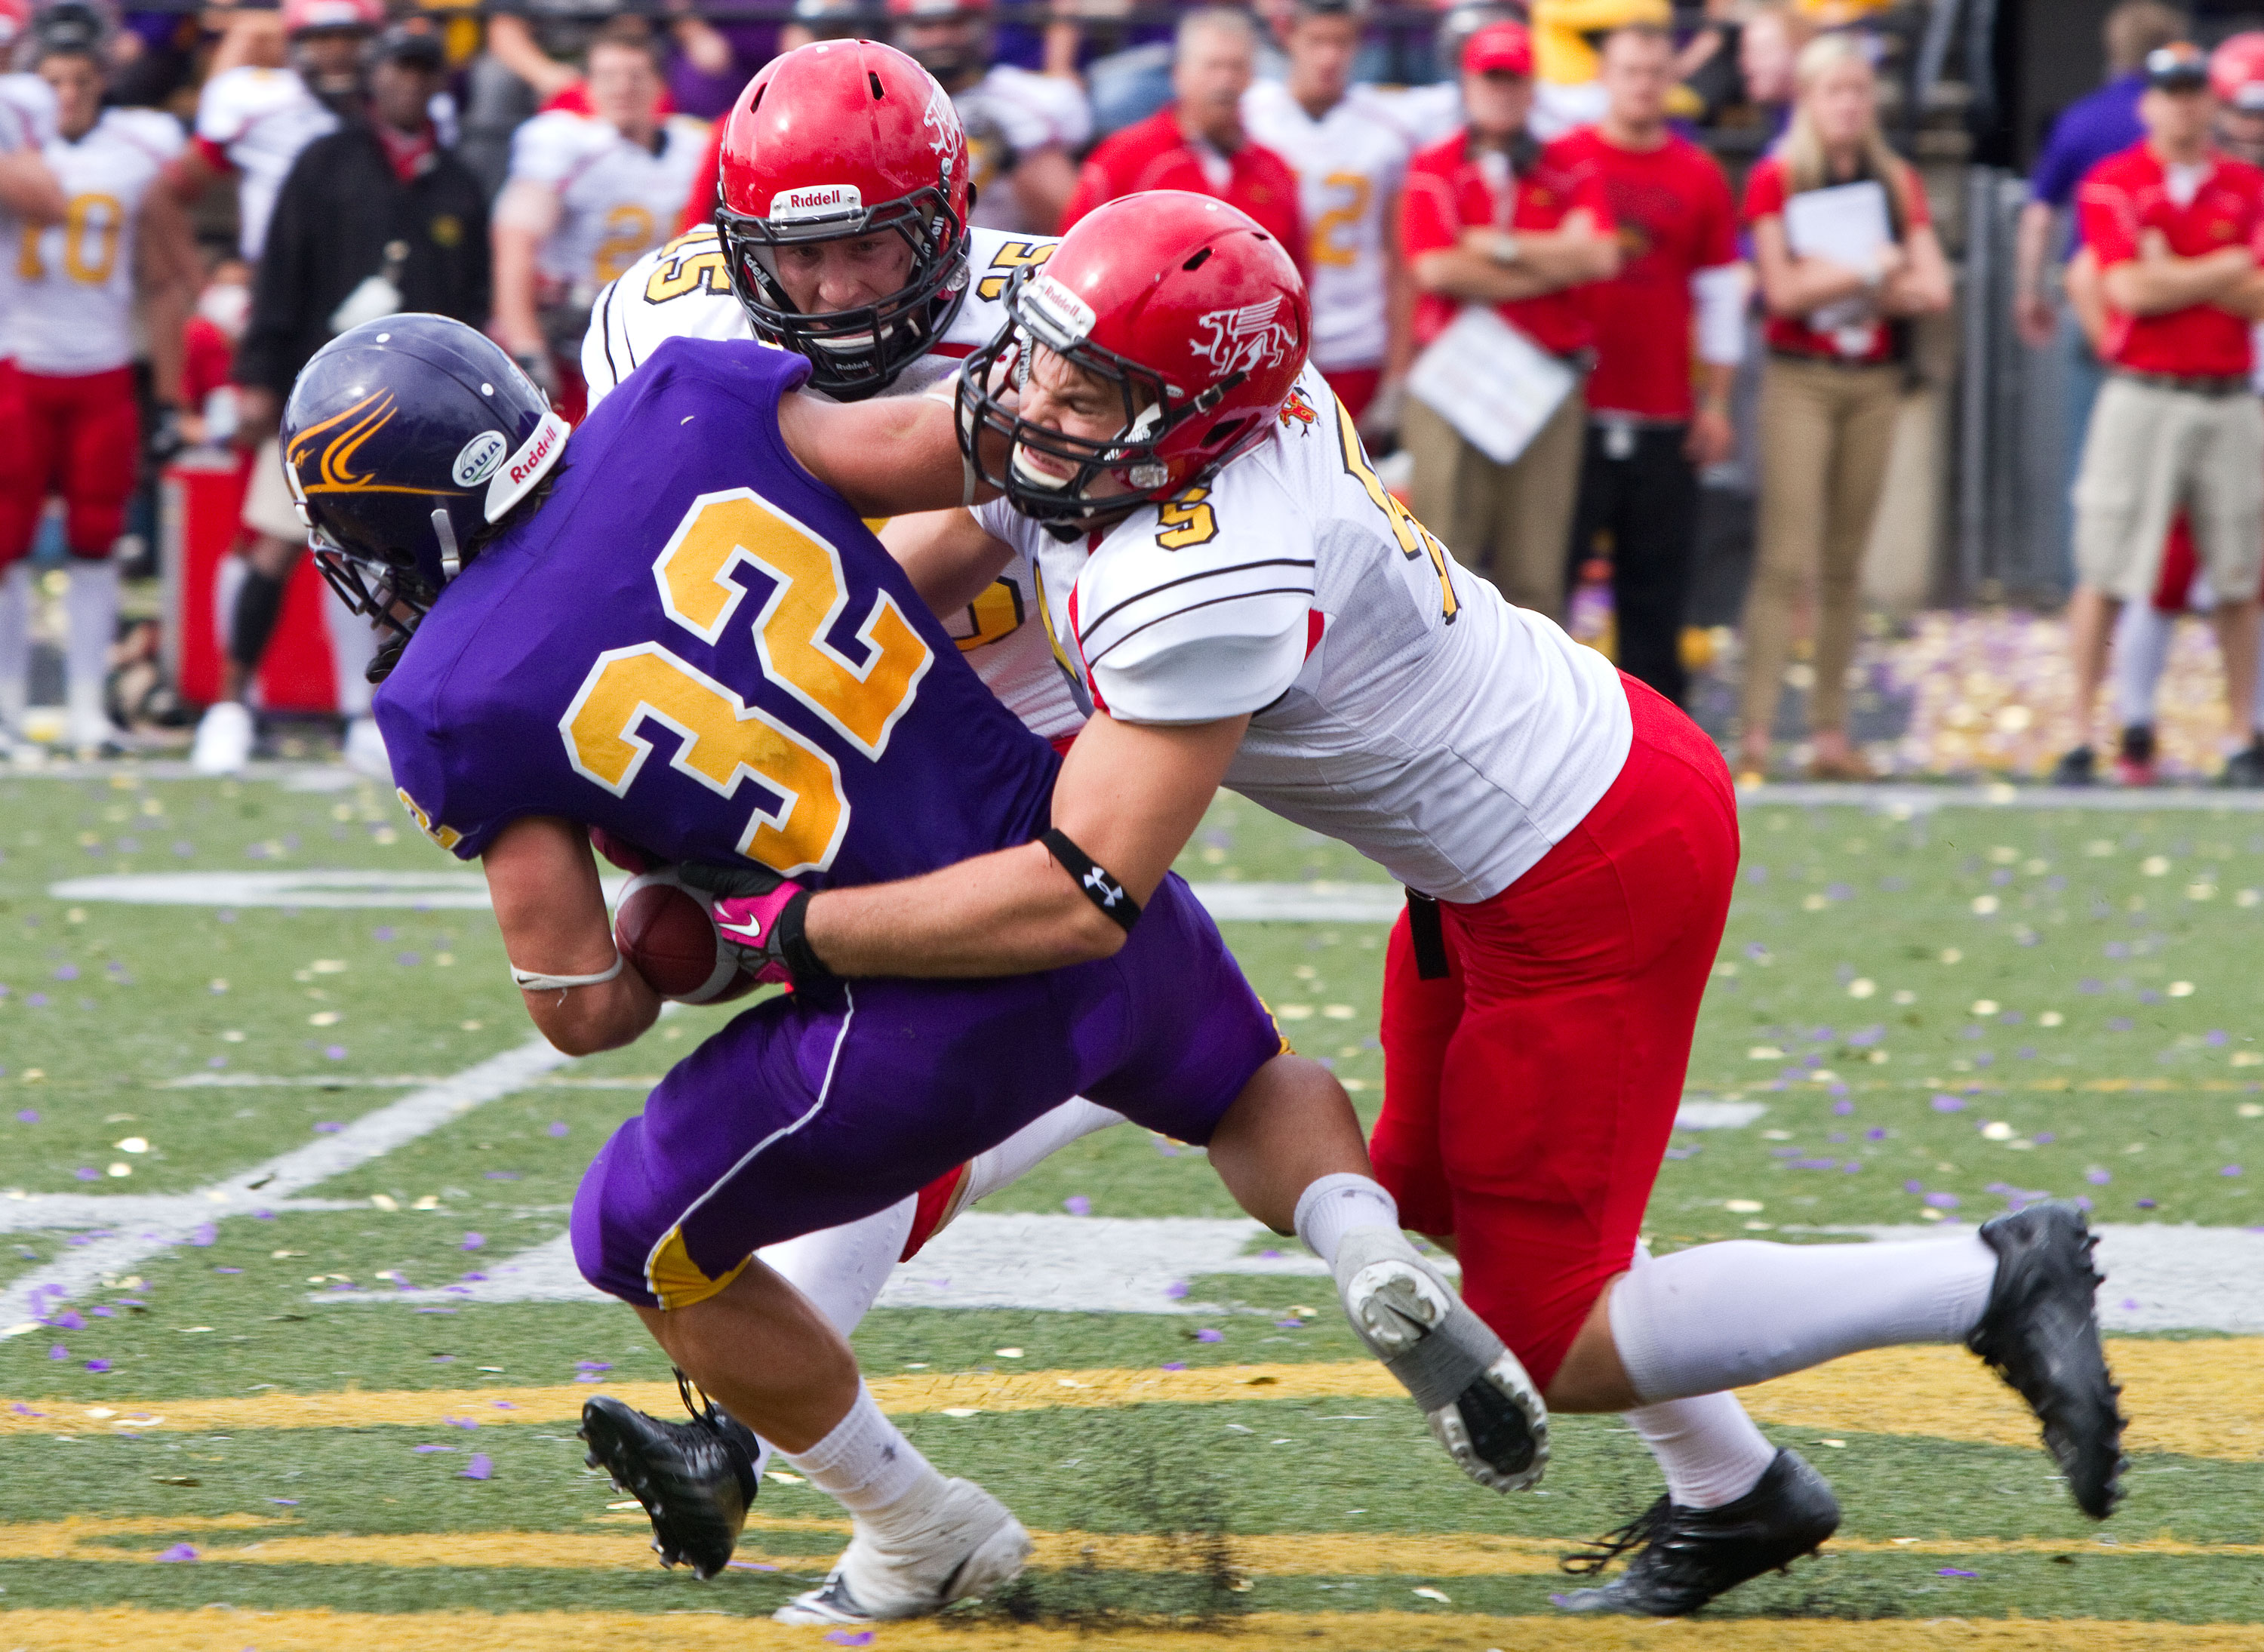 Laurier's Josh Pirie is swarmed by a pair of Gryphons. (Photo by Nick Lachance).